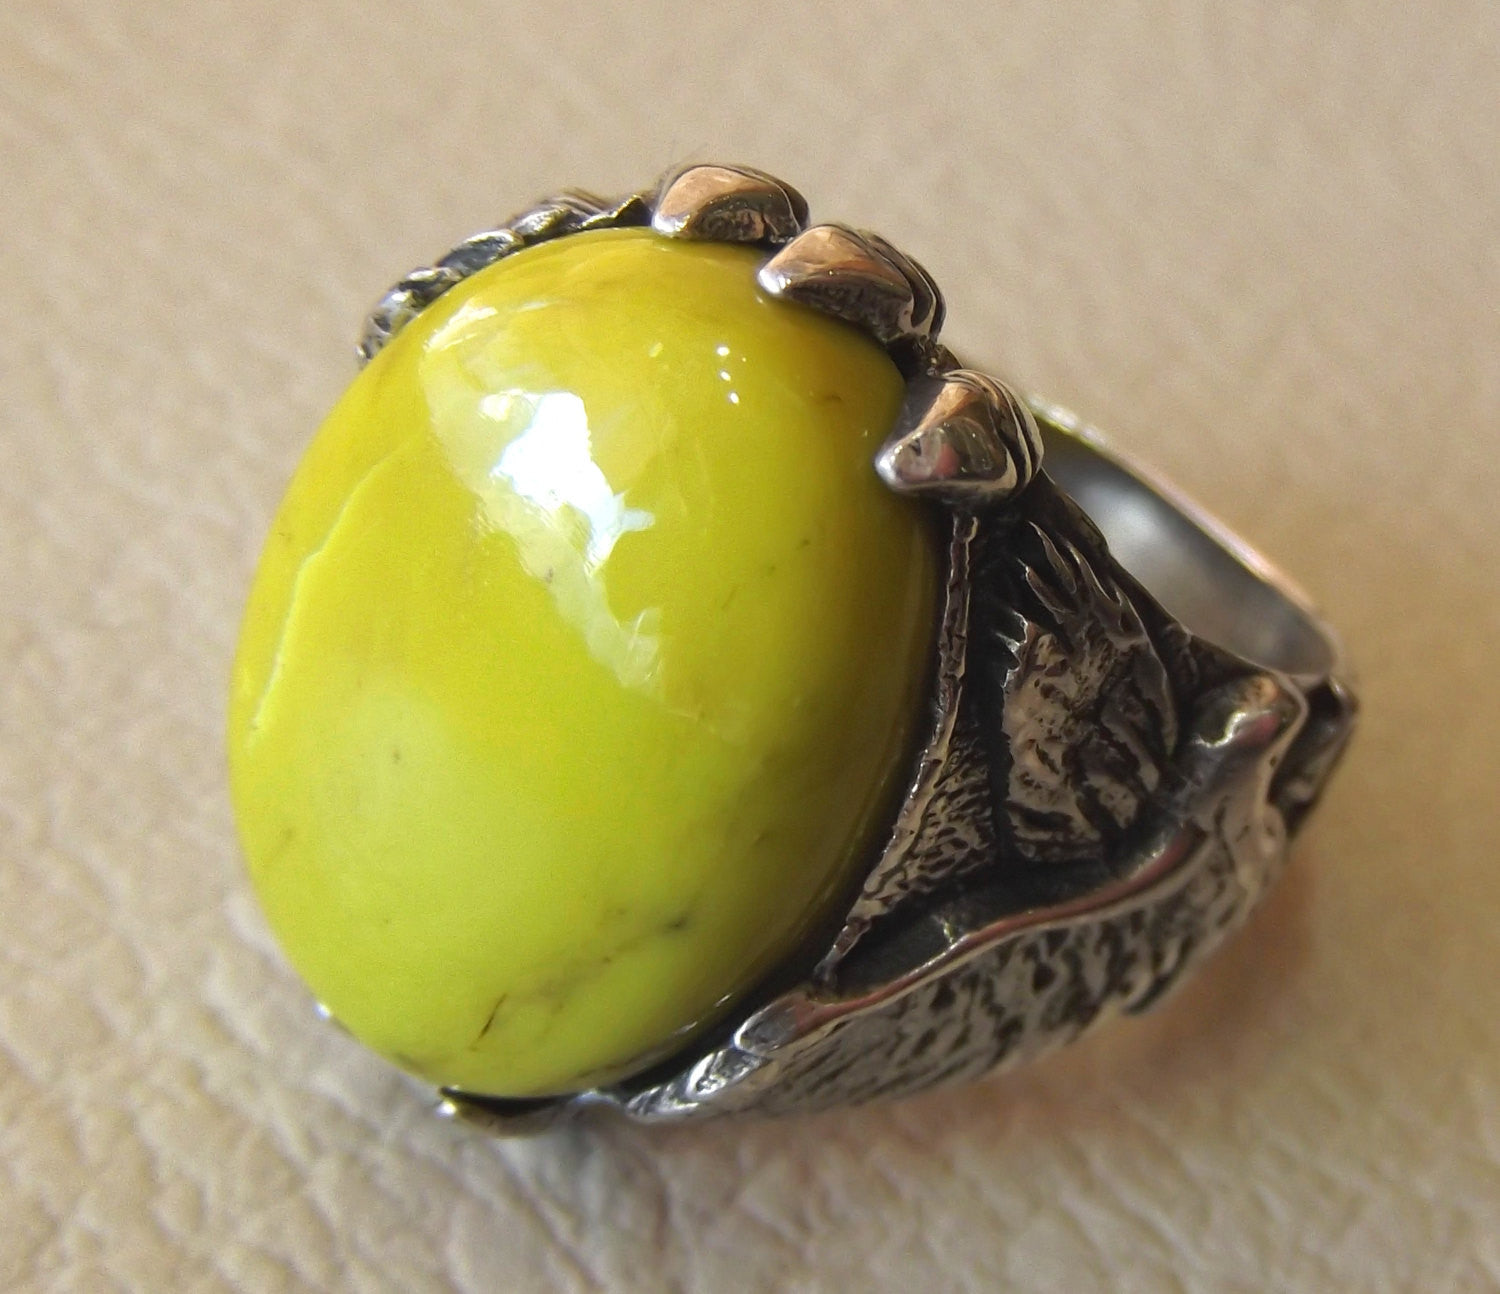 mohave yellow turquoise natural stone semi precious oval gem sterling silver 925 men eagle ring jewelry unique gemstone fast shipping